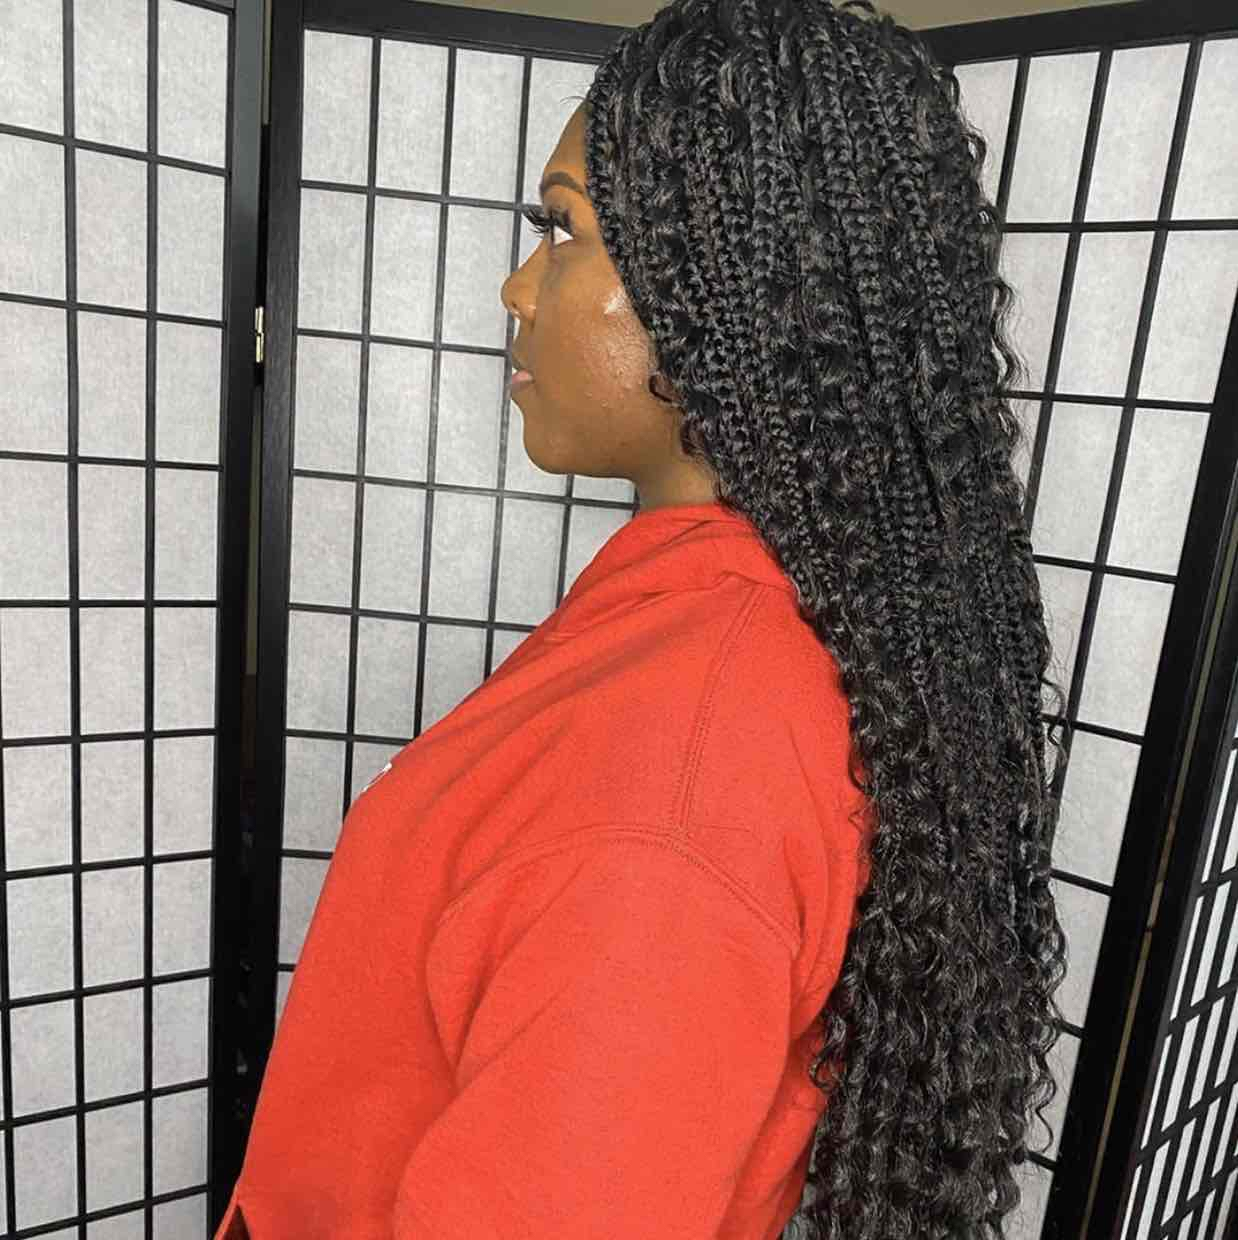 salon de coiffure afro tresse tresses box braids crochet braids vanilles tissages paris 75 77 78 91 92 93 94 95 IZPPZCXW